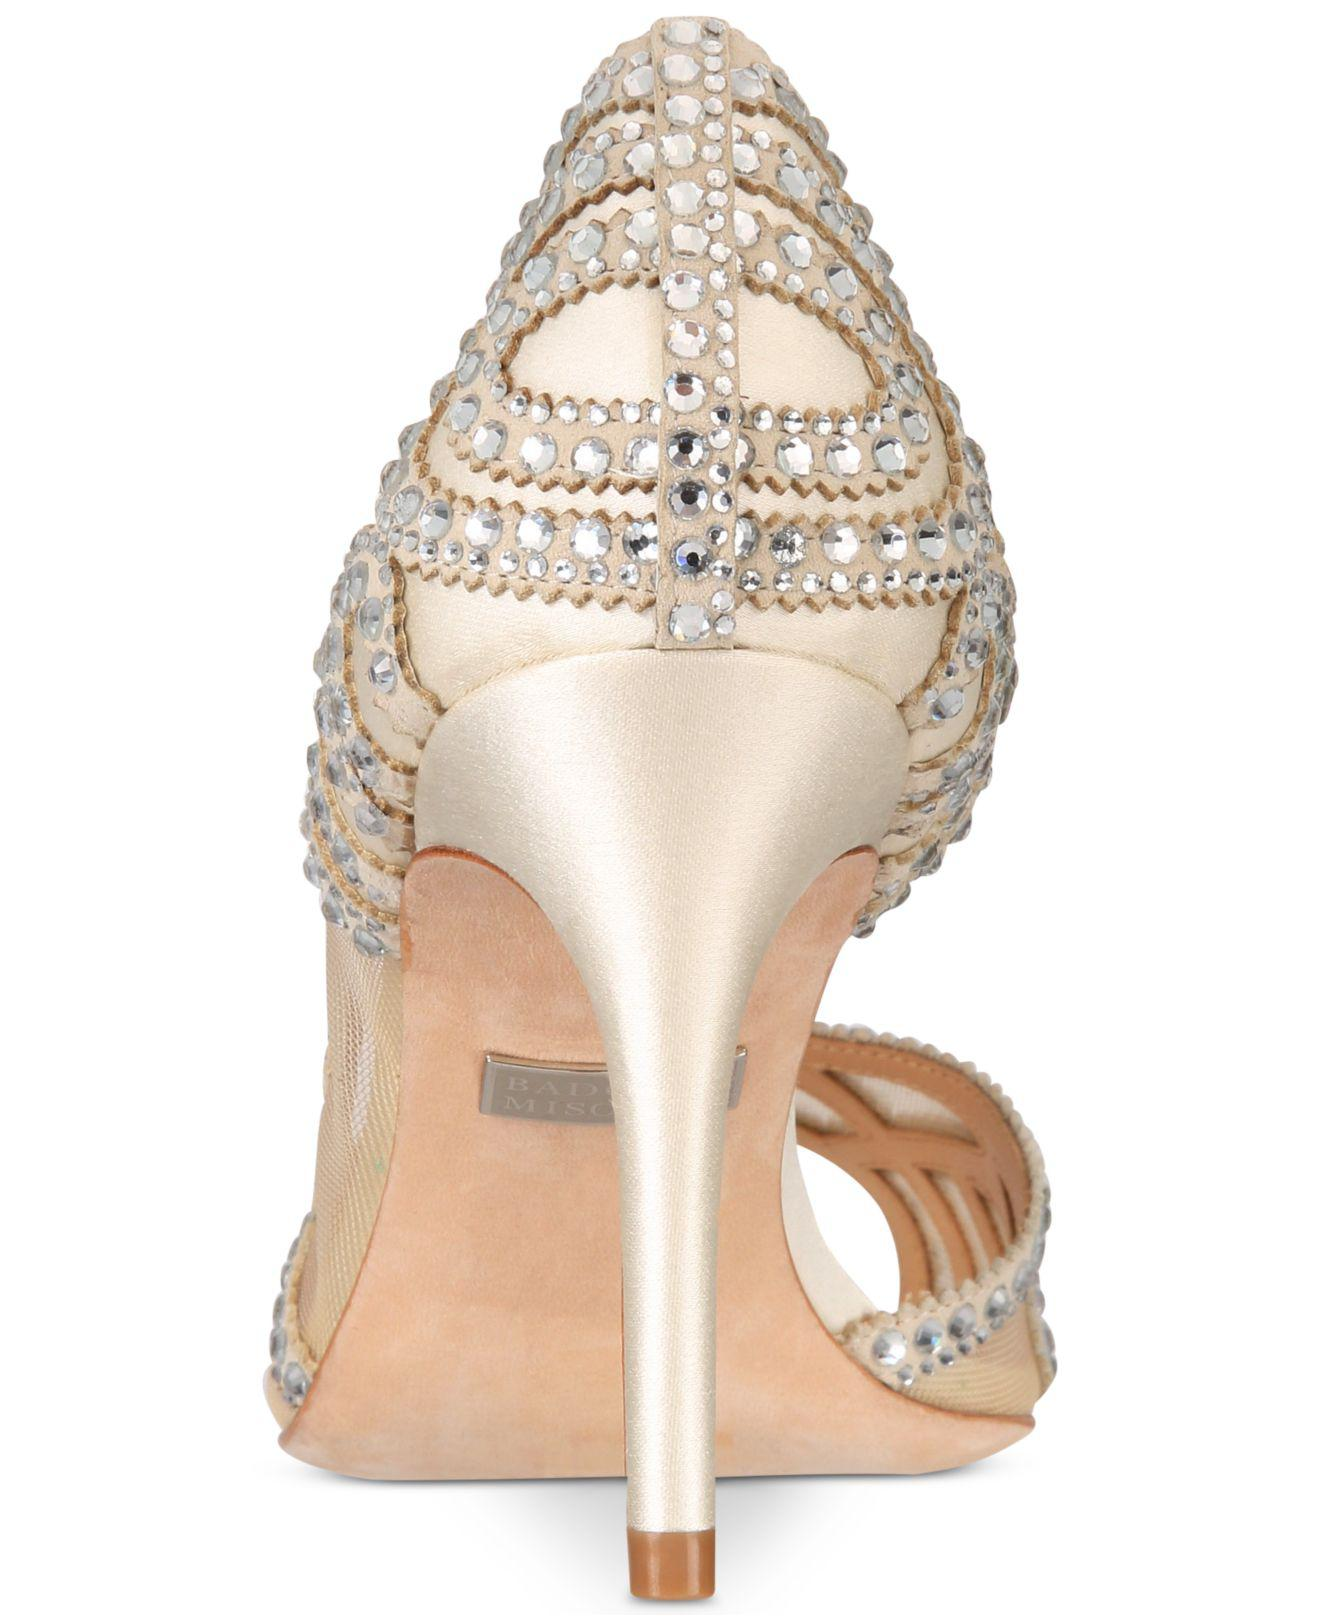 954ff6e28a7 Lyst - Badgley Mischka Marla Embellished Peep-toe Evening Pumps in White